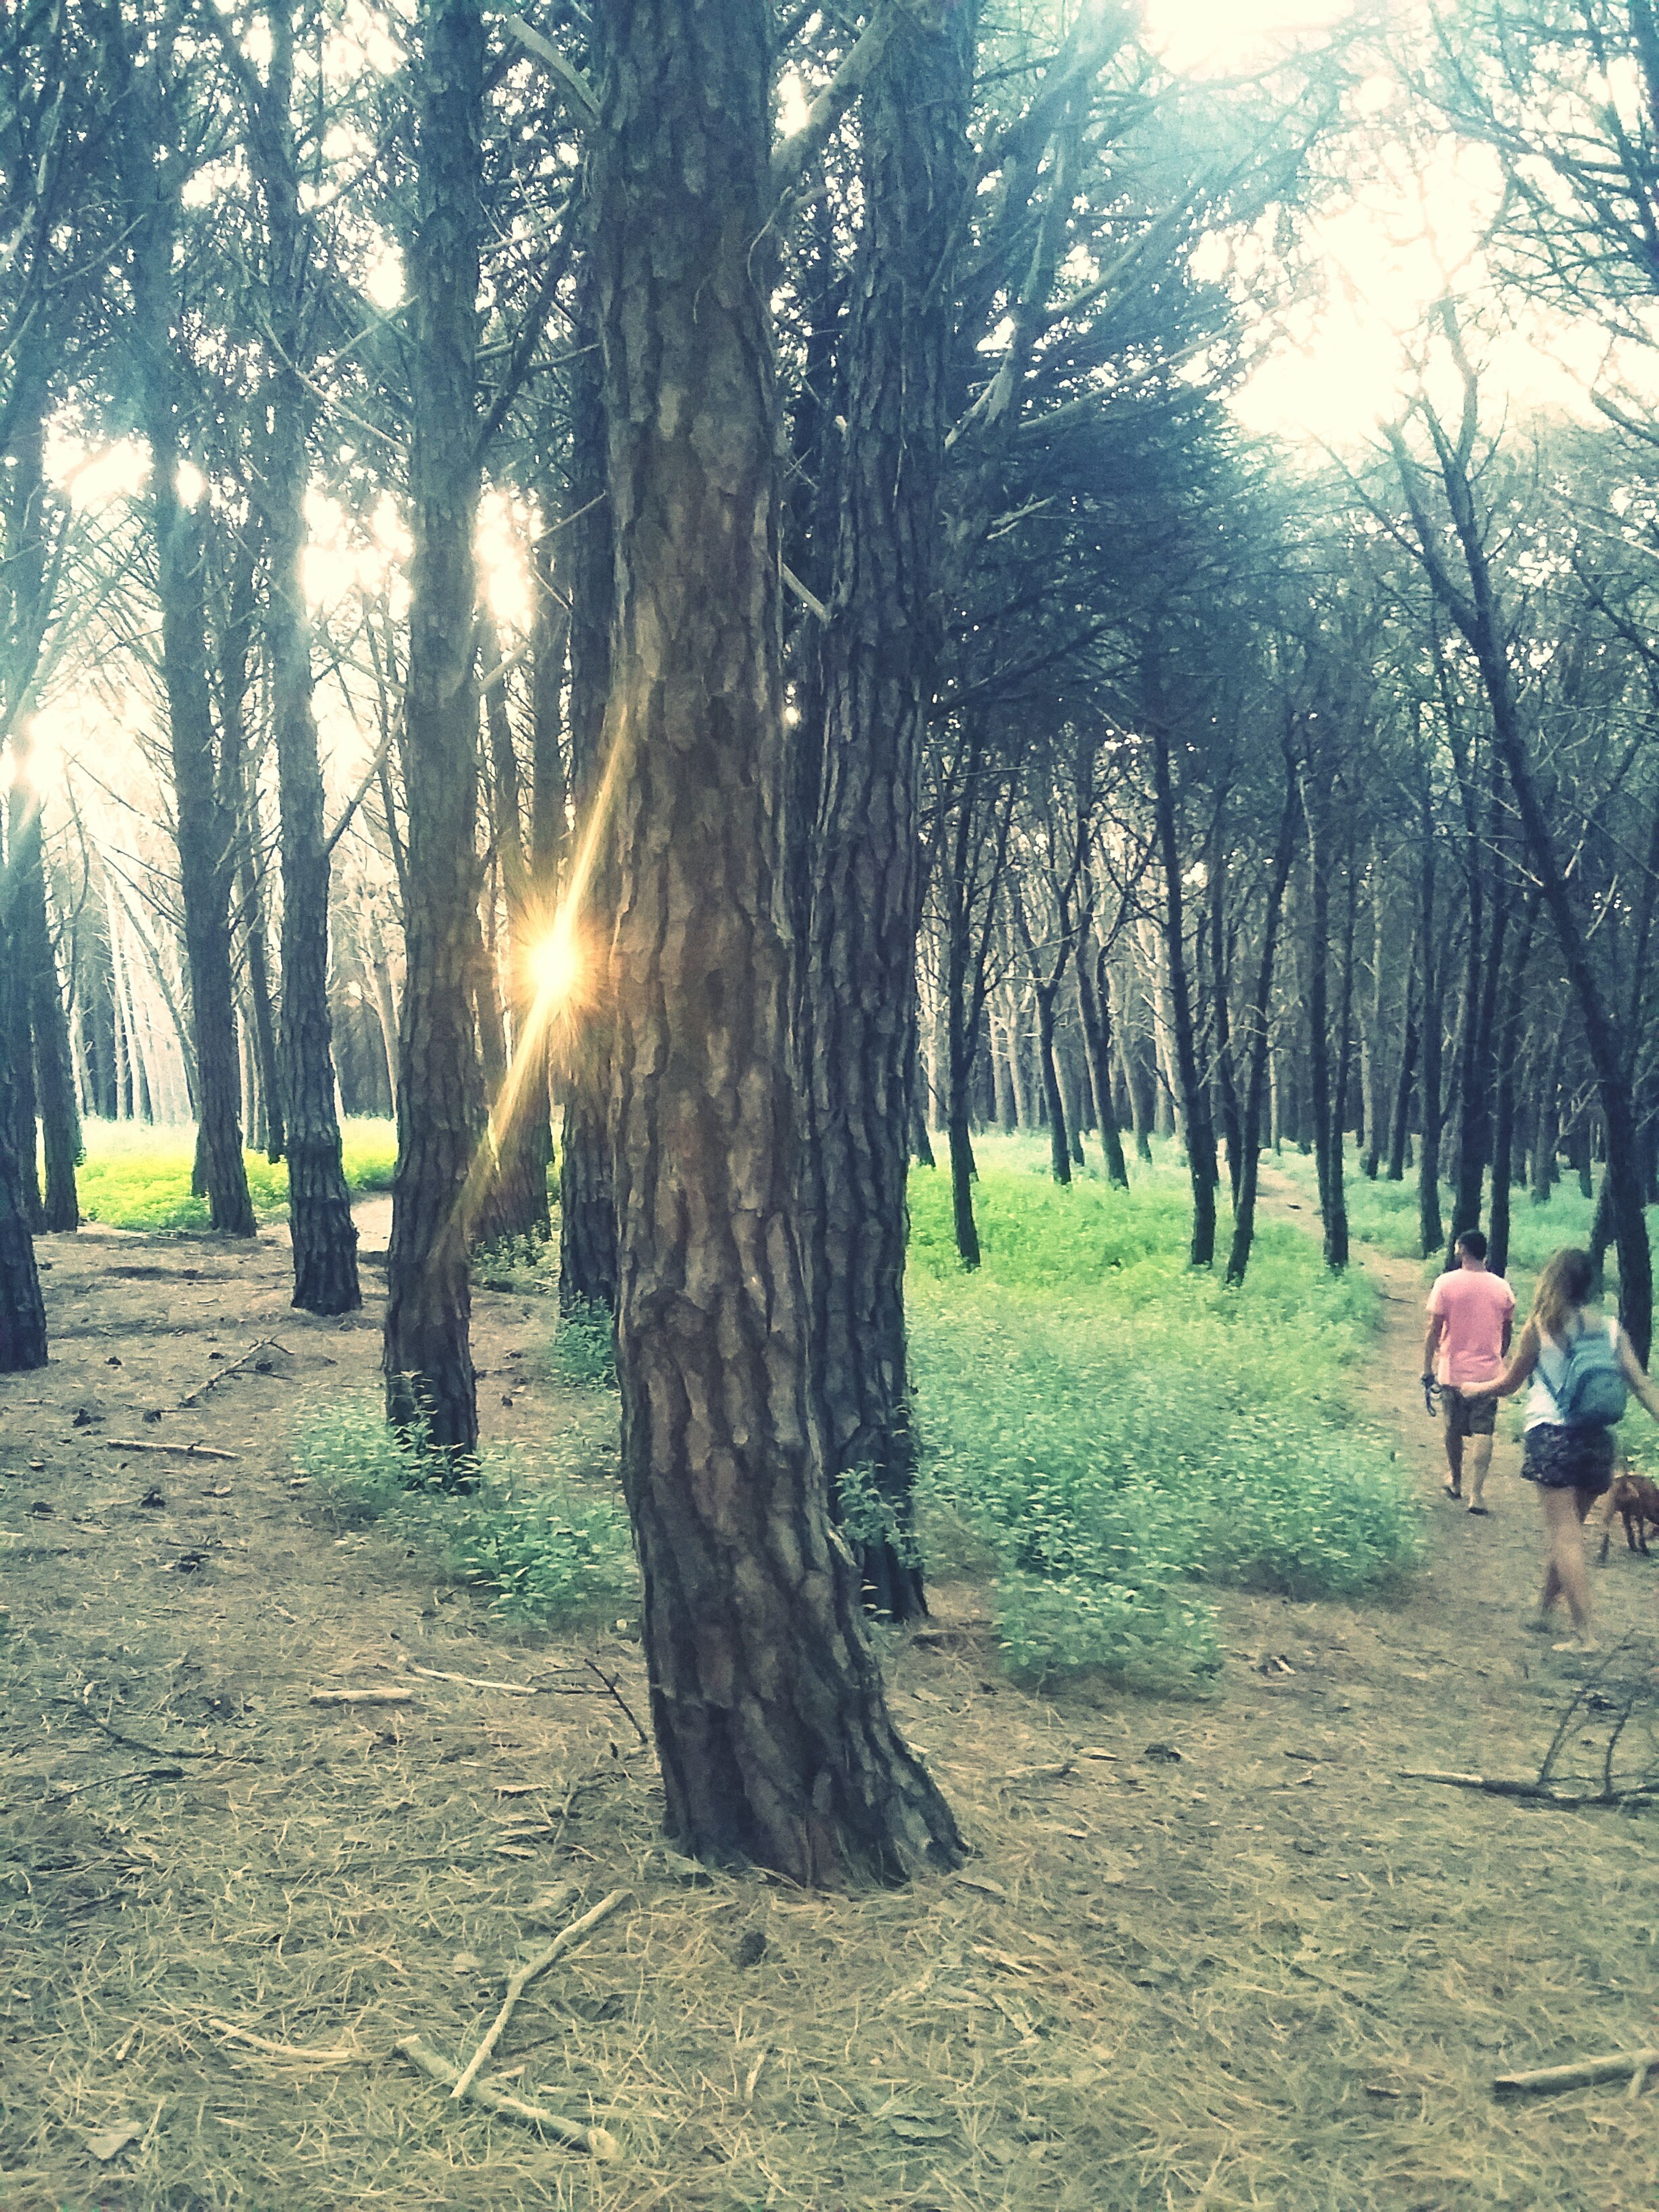 tree, sunlight, tree trunk, sun, sunbeam, tranquility, nature, growth, tranquil scene, lens flare, grass, landscape, park - man made space, scenics, field, shadow, beauty in nature, sunny, day, outdoors